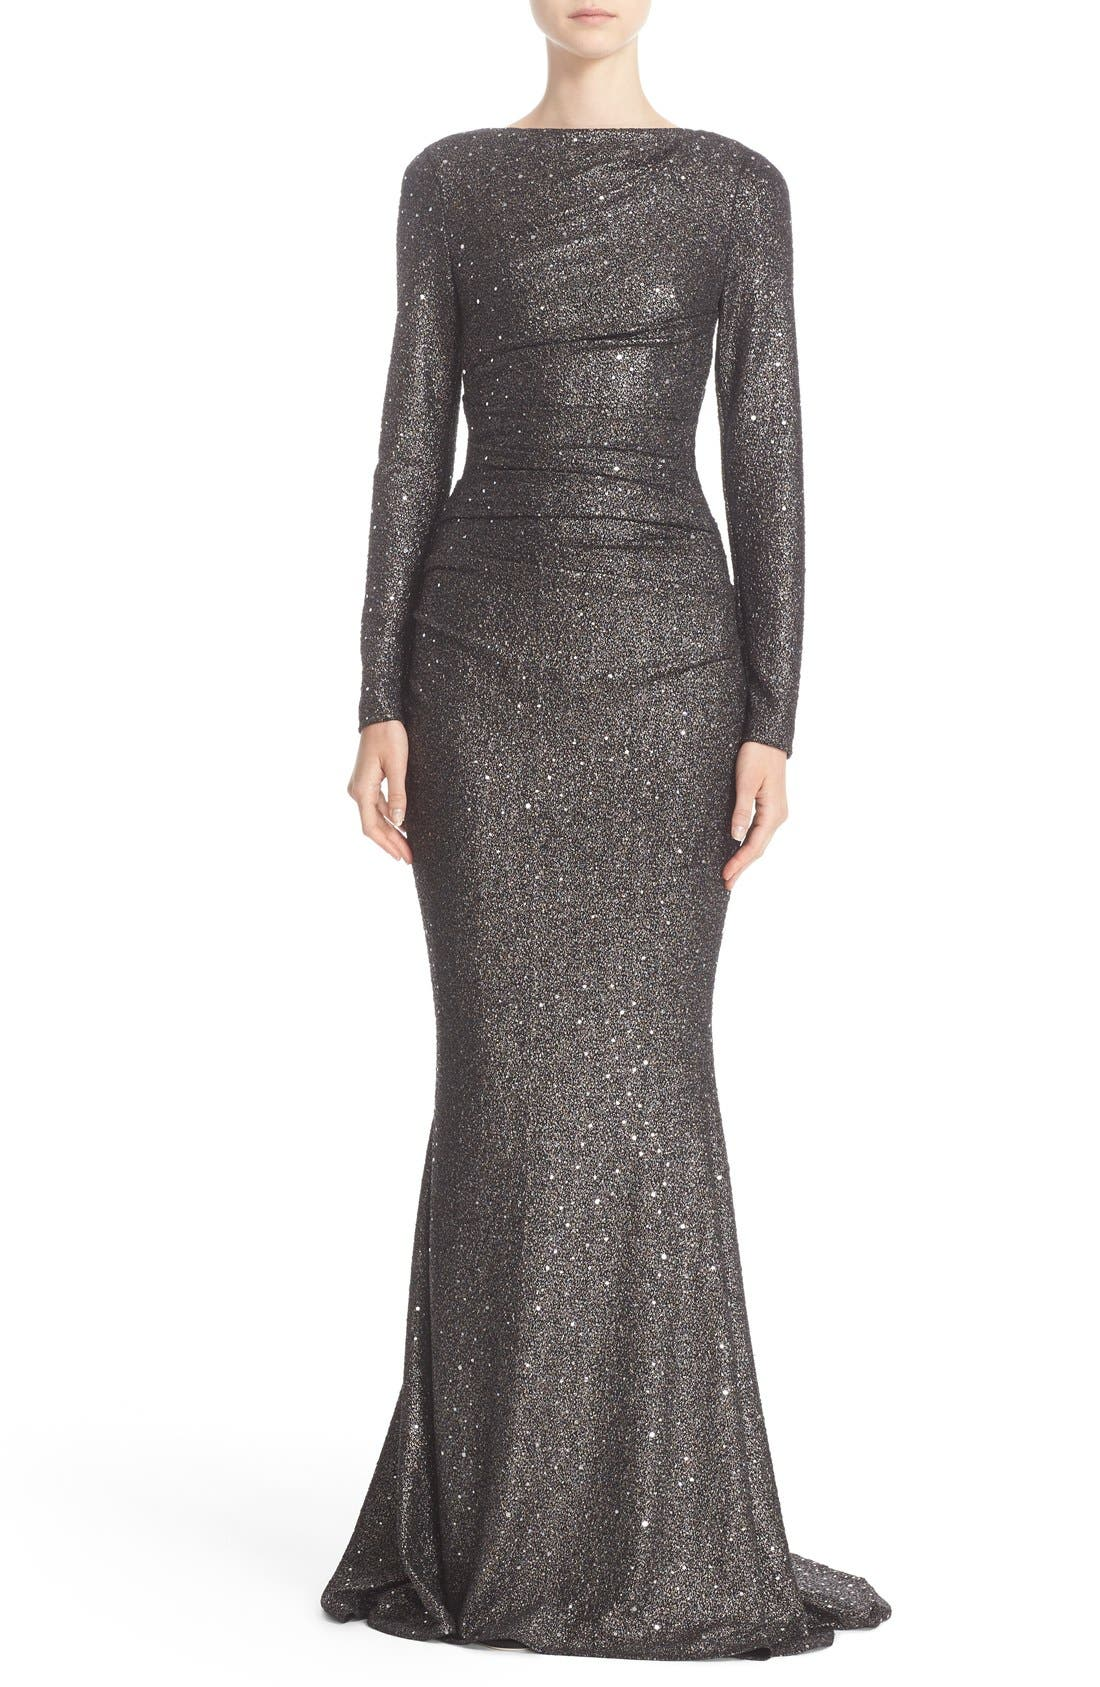 Main Image - Talbot Runhof Sequin Glitter Jersey Ruched Gown